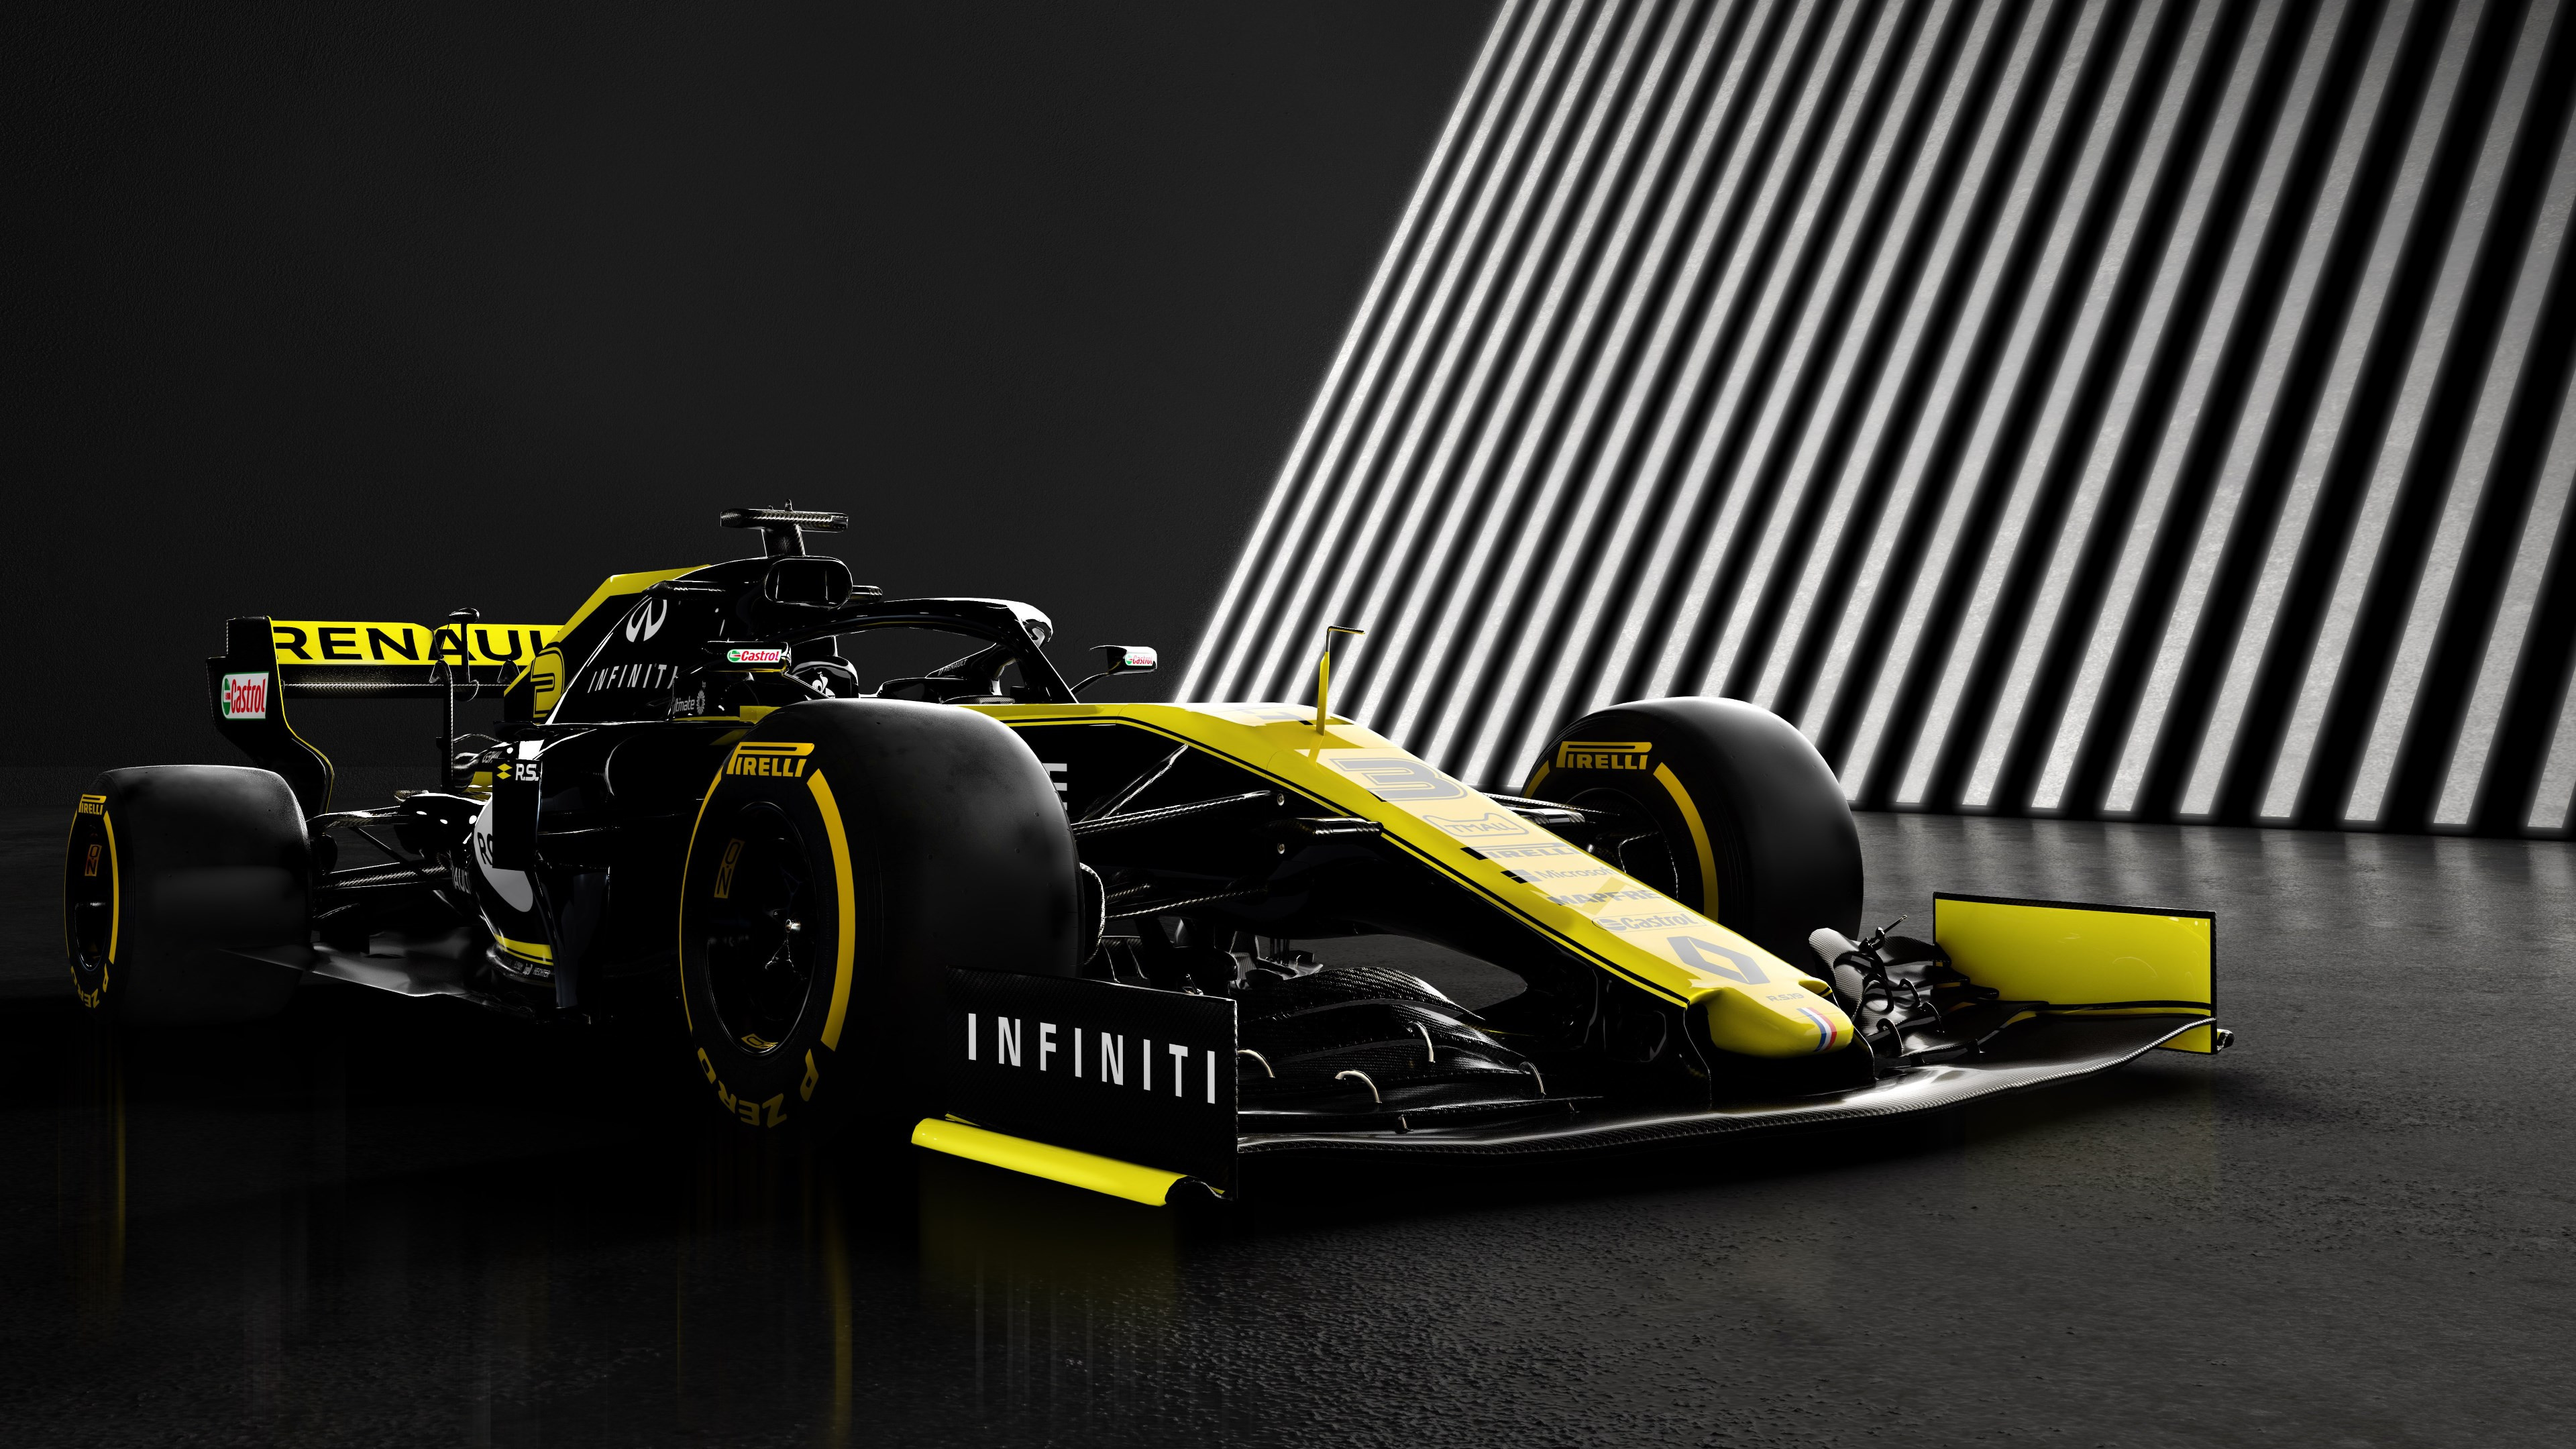 Download wallpaper Renault F1 RS19 3840x2160 3840x2160